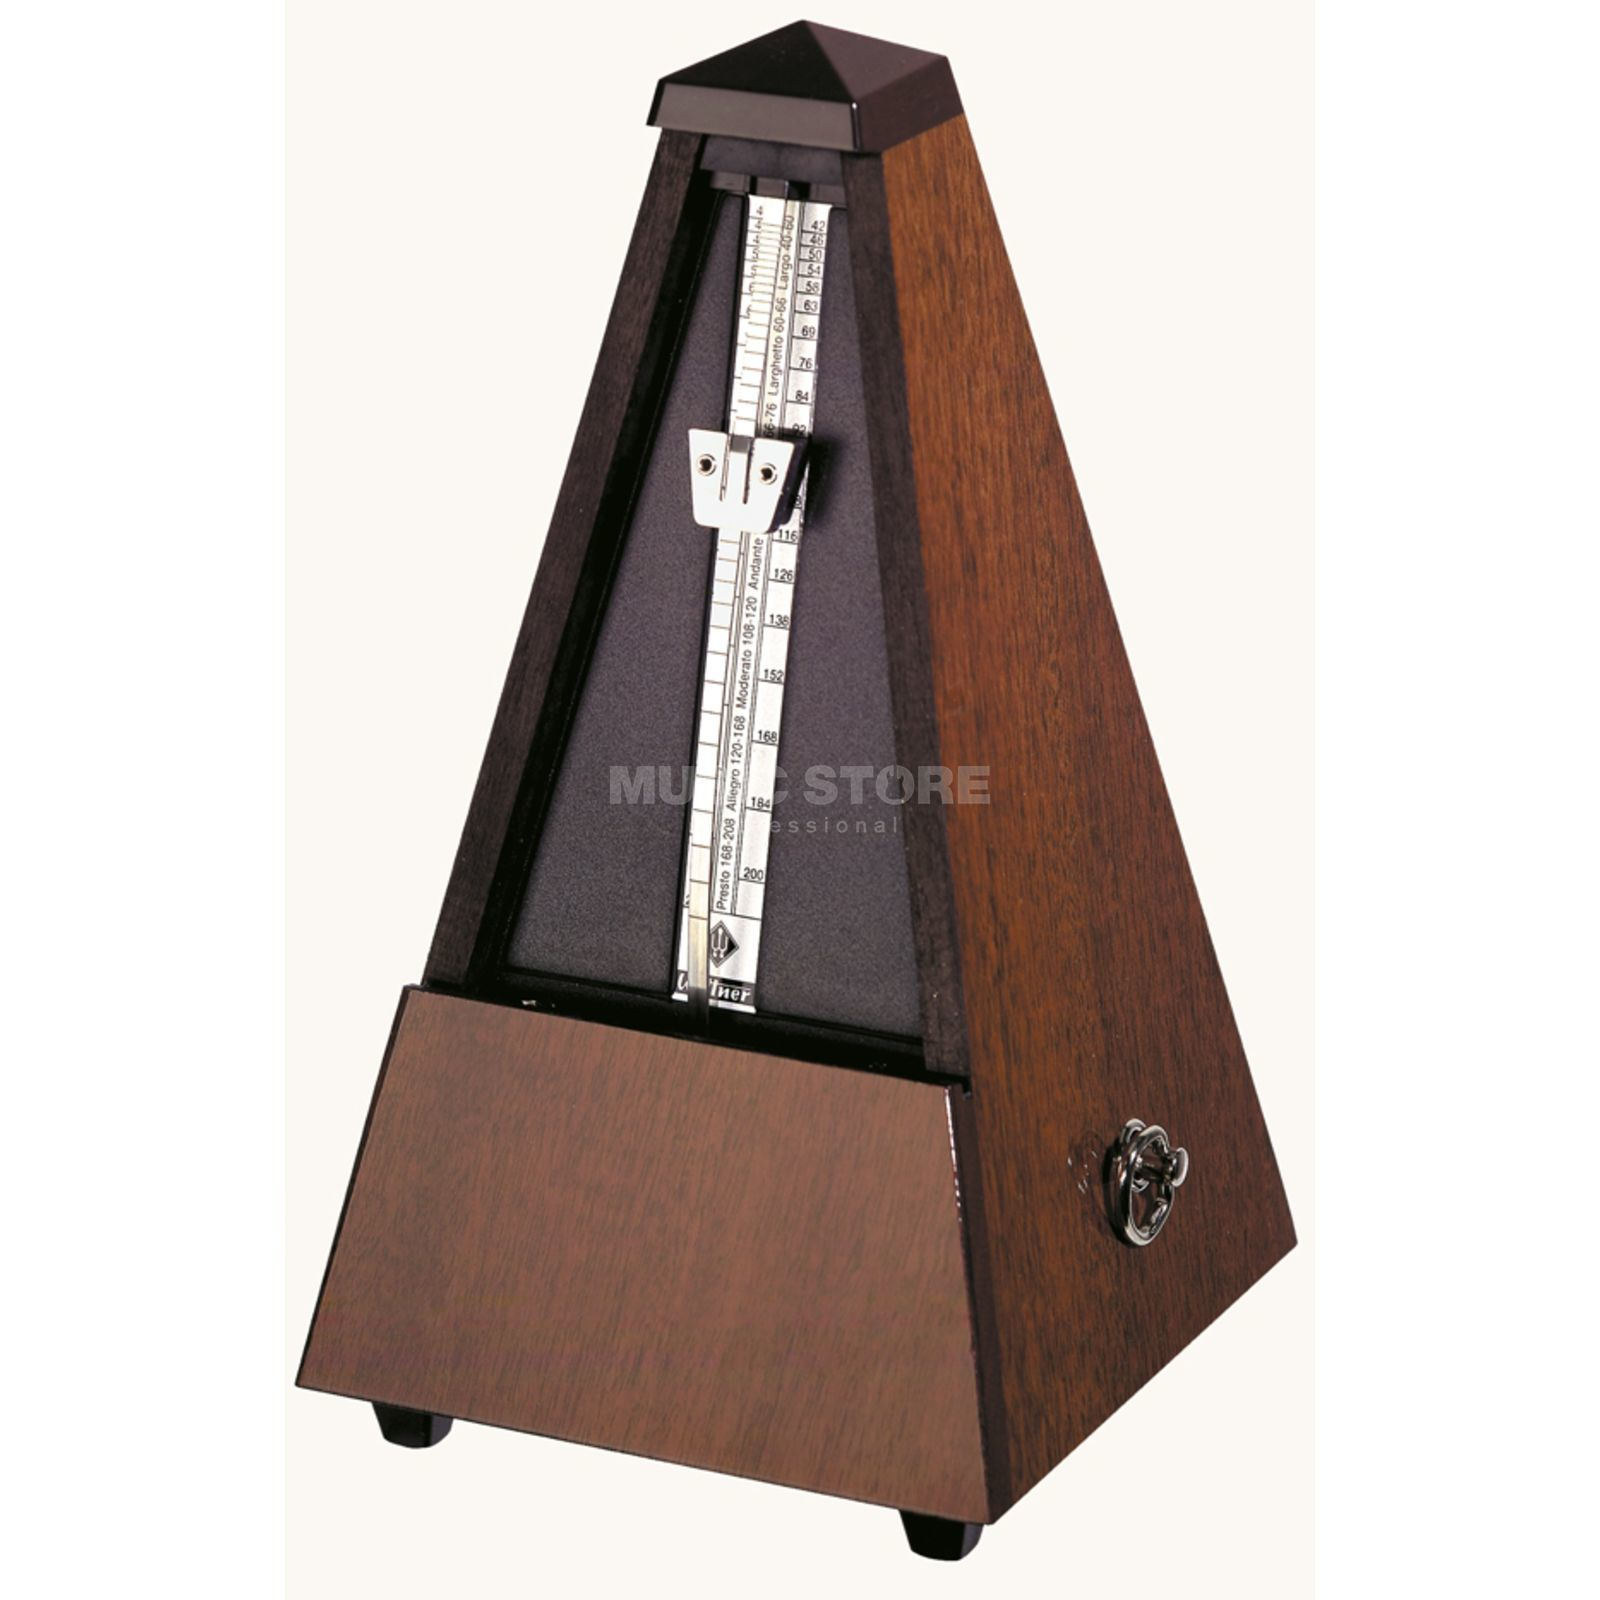 Wittner M 814 M Metronom with Bell Walnut Body, Pyramid Form Produktbillede